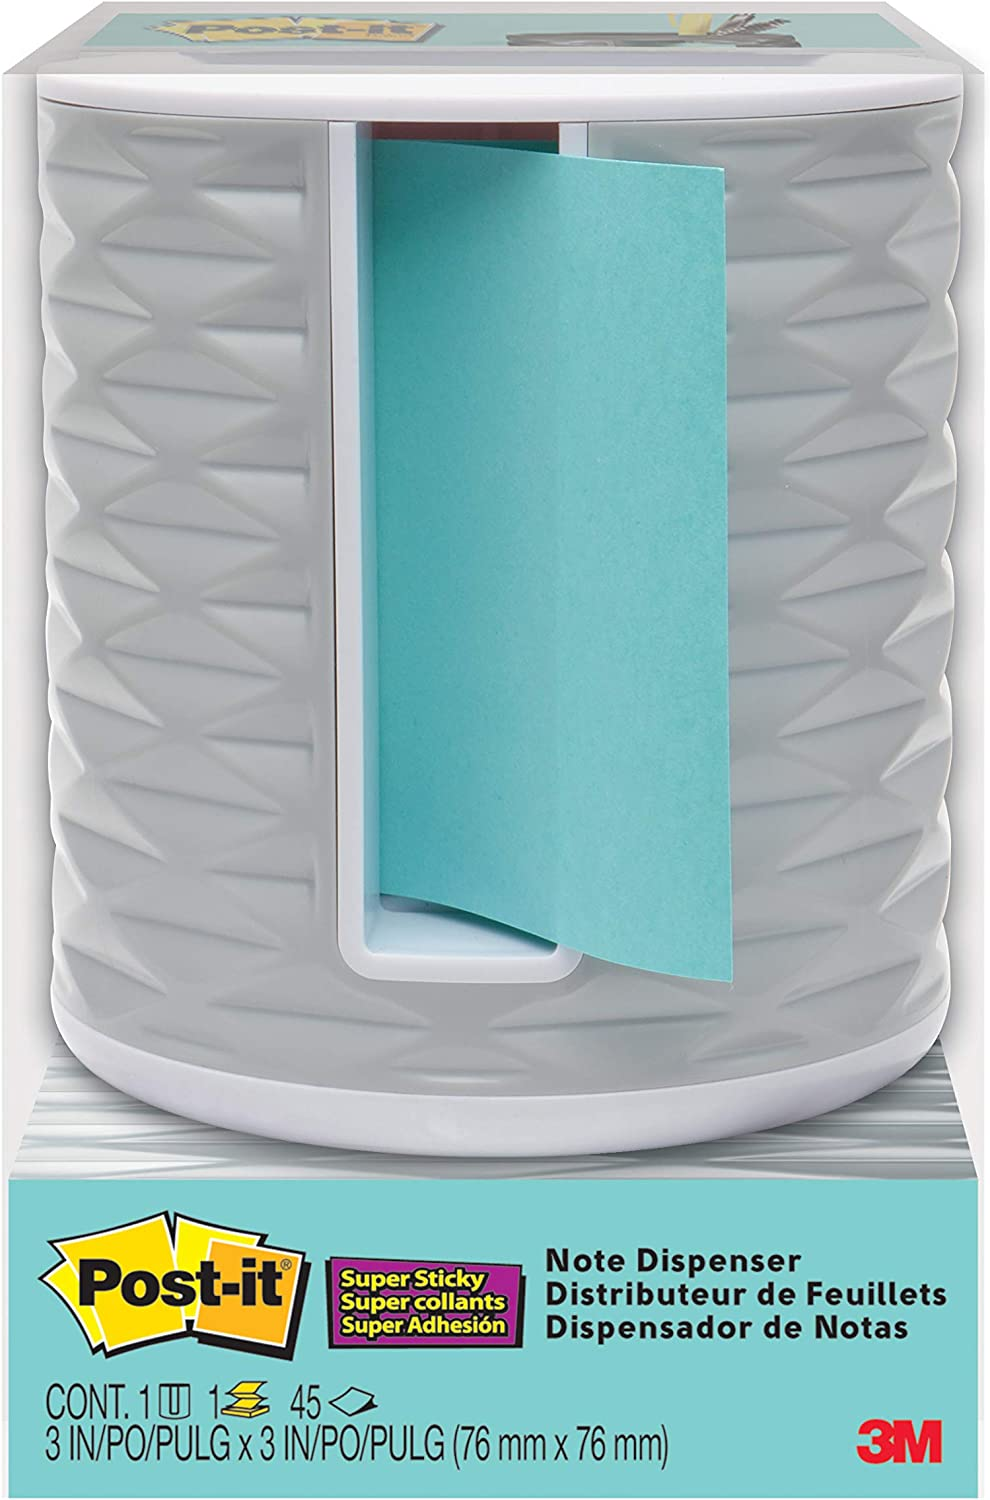 Post-it Note Dispenser, Vertical, White with Grey (ABS-330-W)